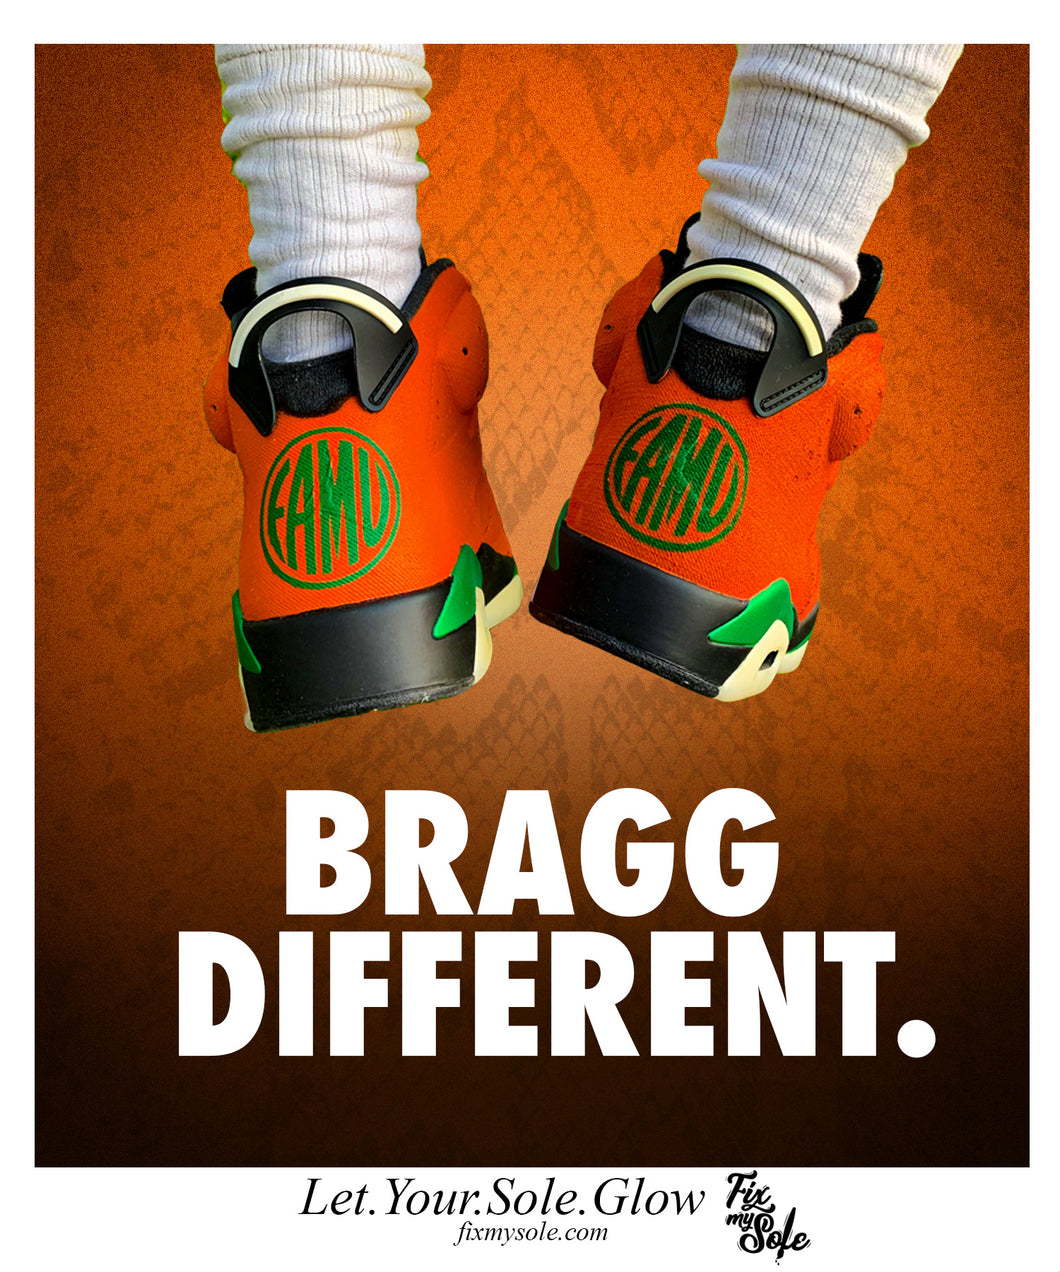 Bragg Different Print